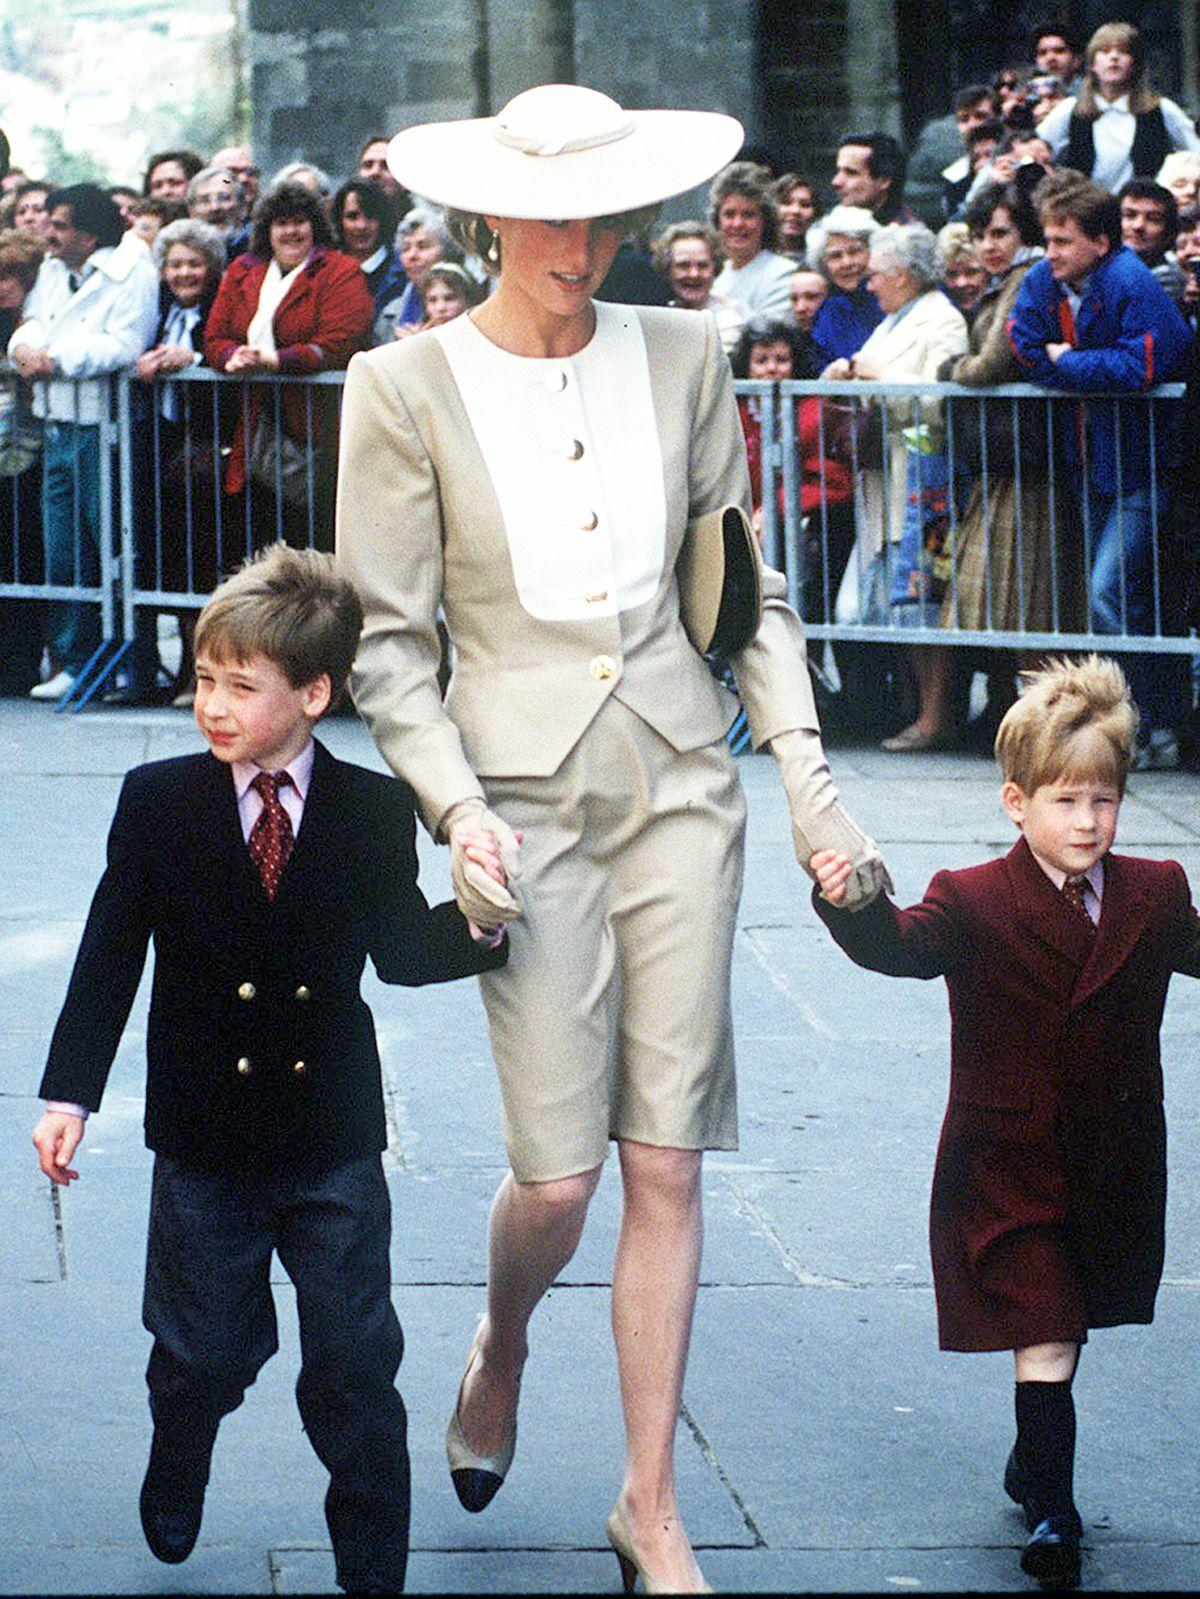 Princess Diana is seen holding hands with her two young sons William and Harry.